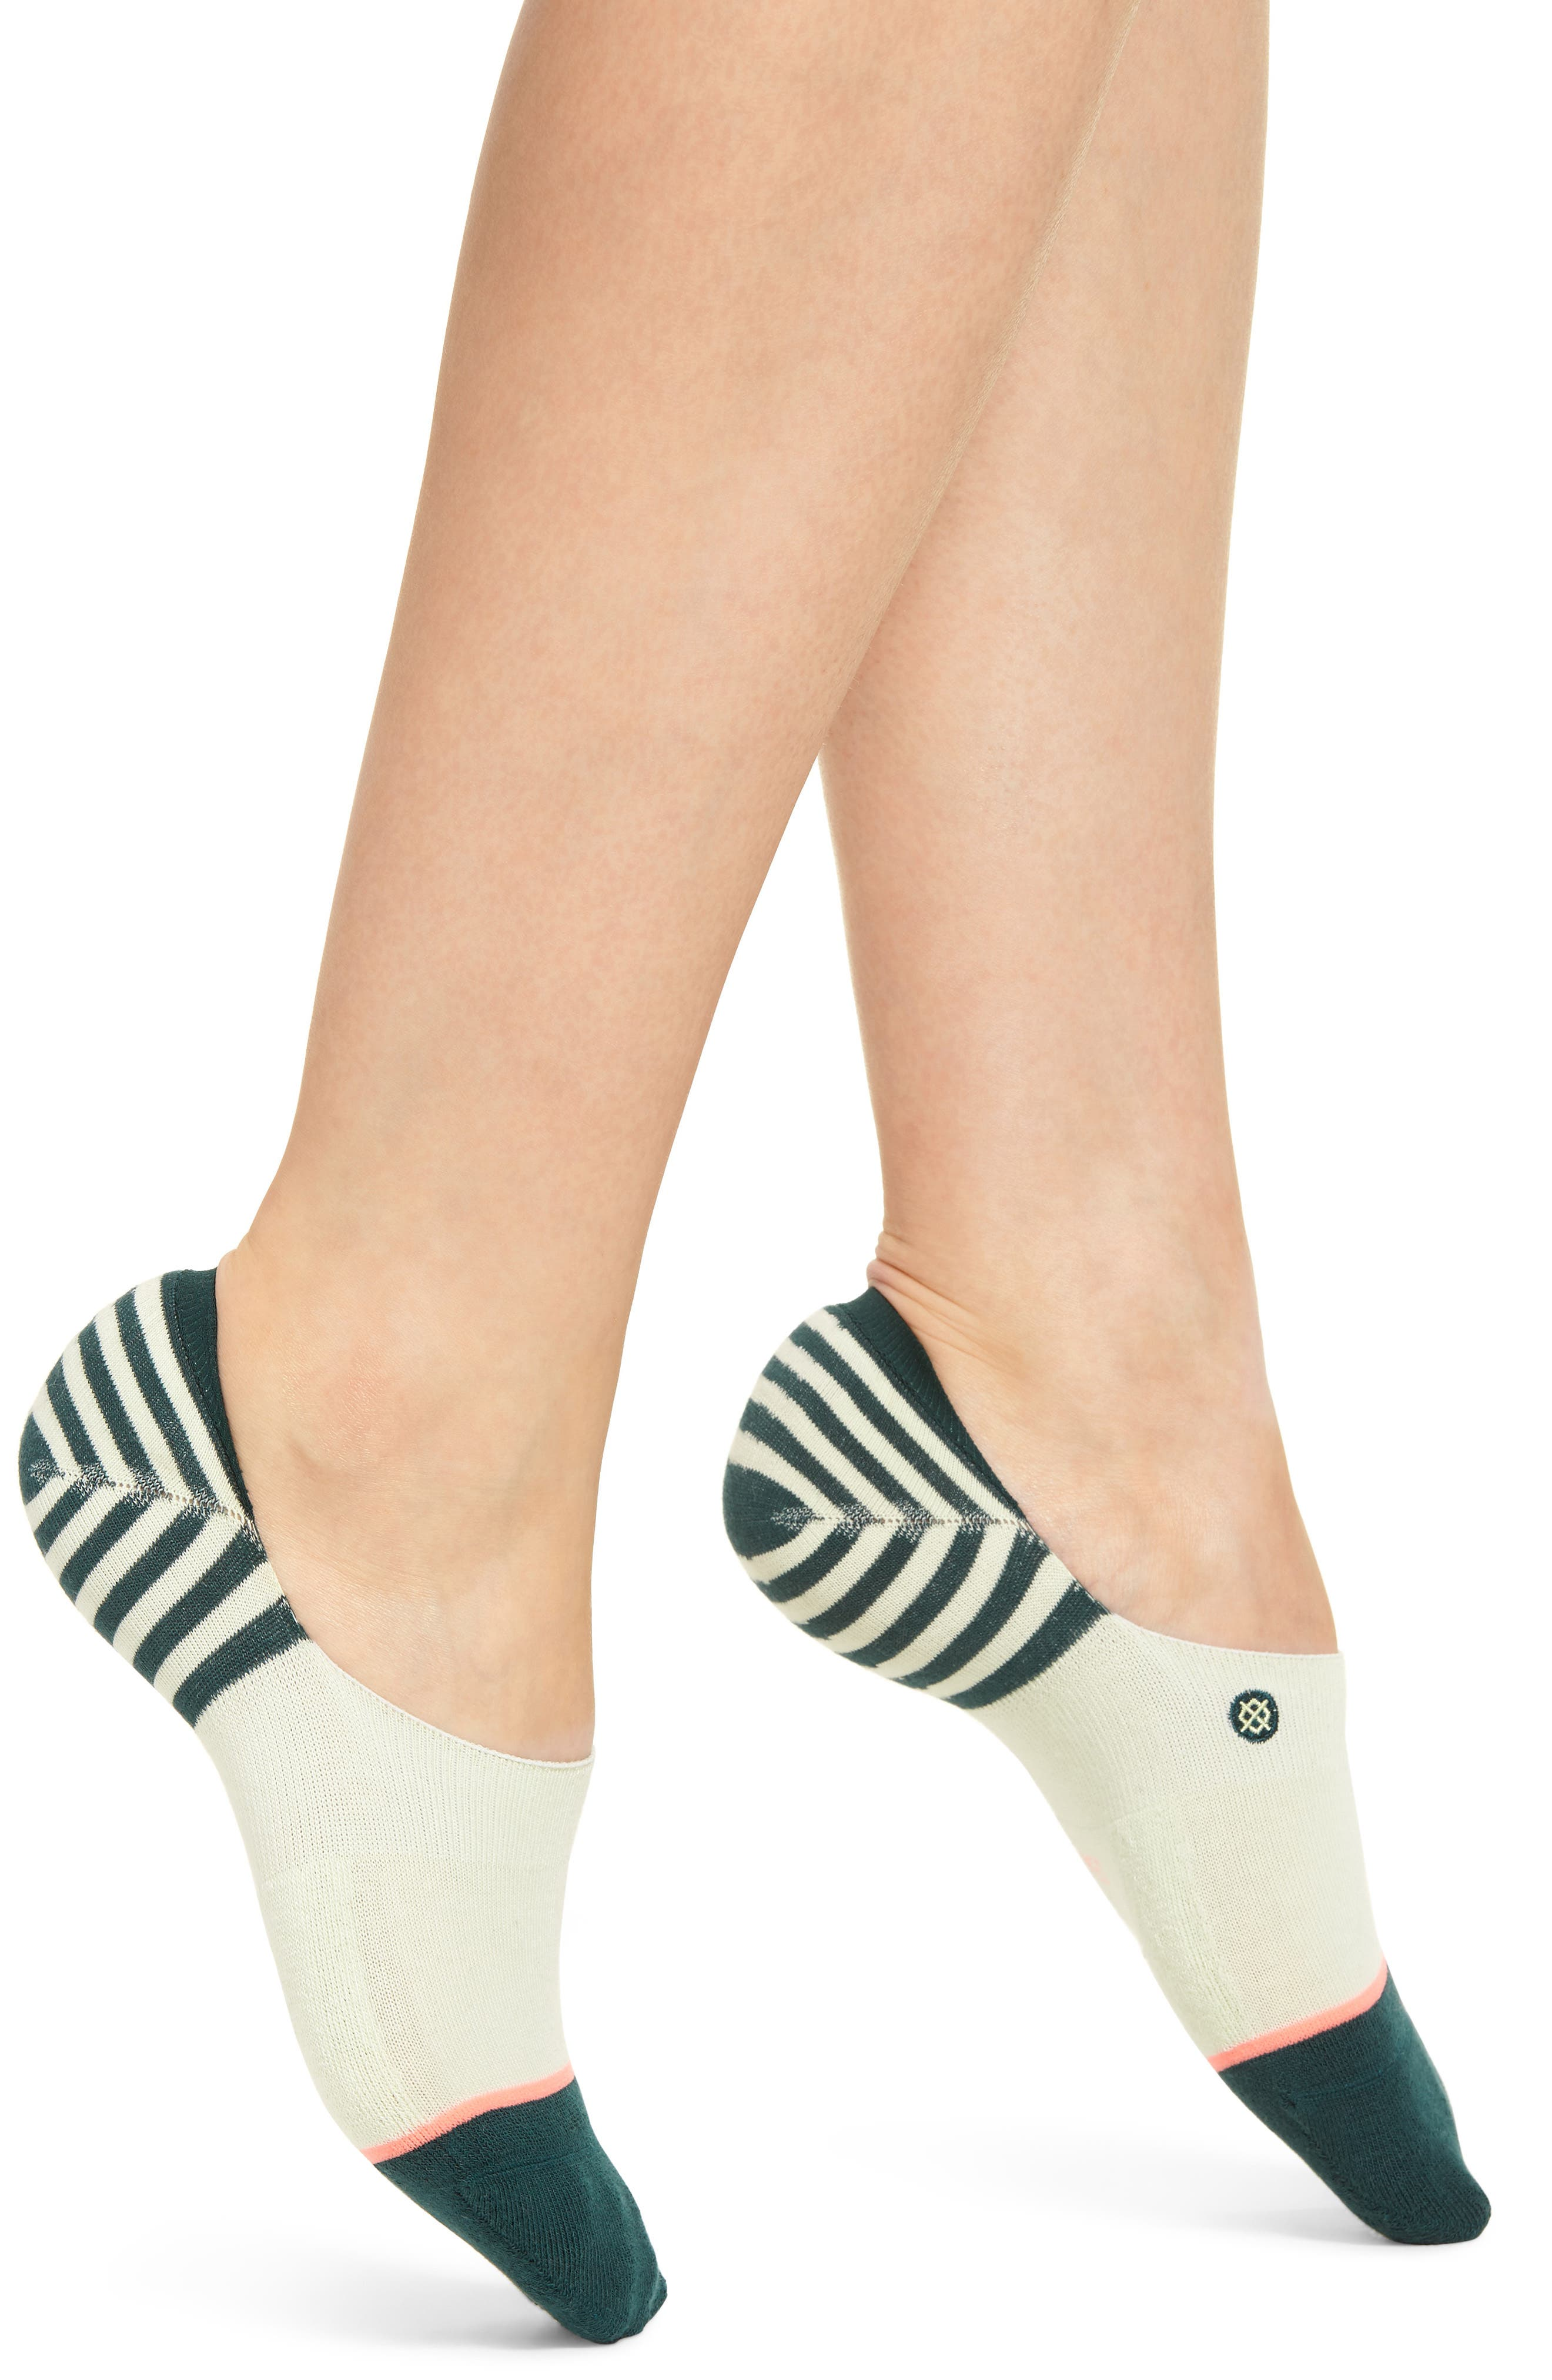 Uncommon Super Invisible No-Show Socks,                         Main,                         color, 300